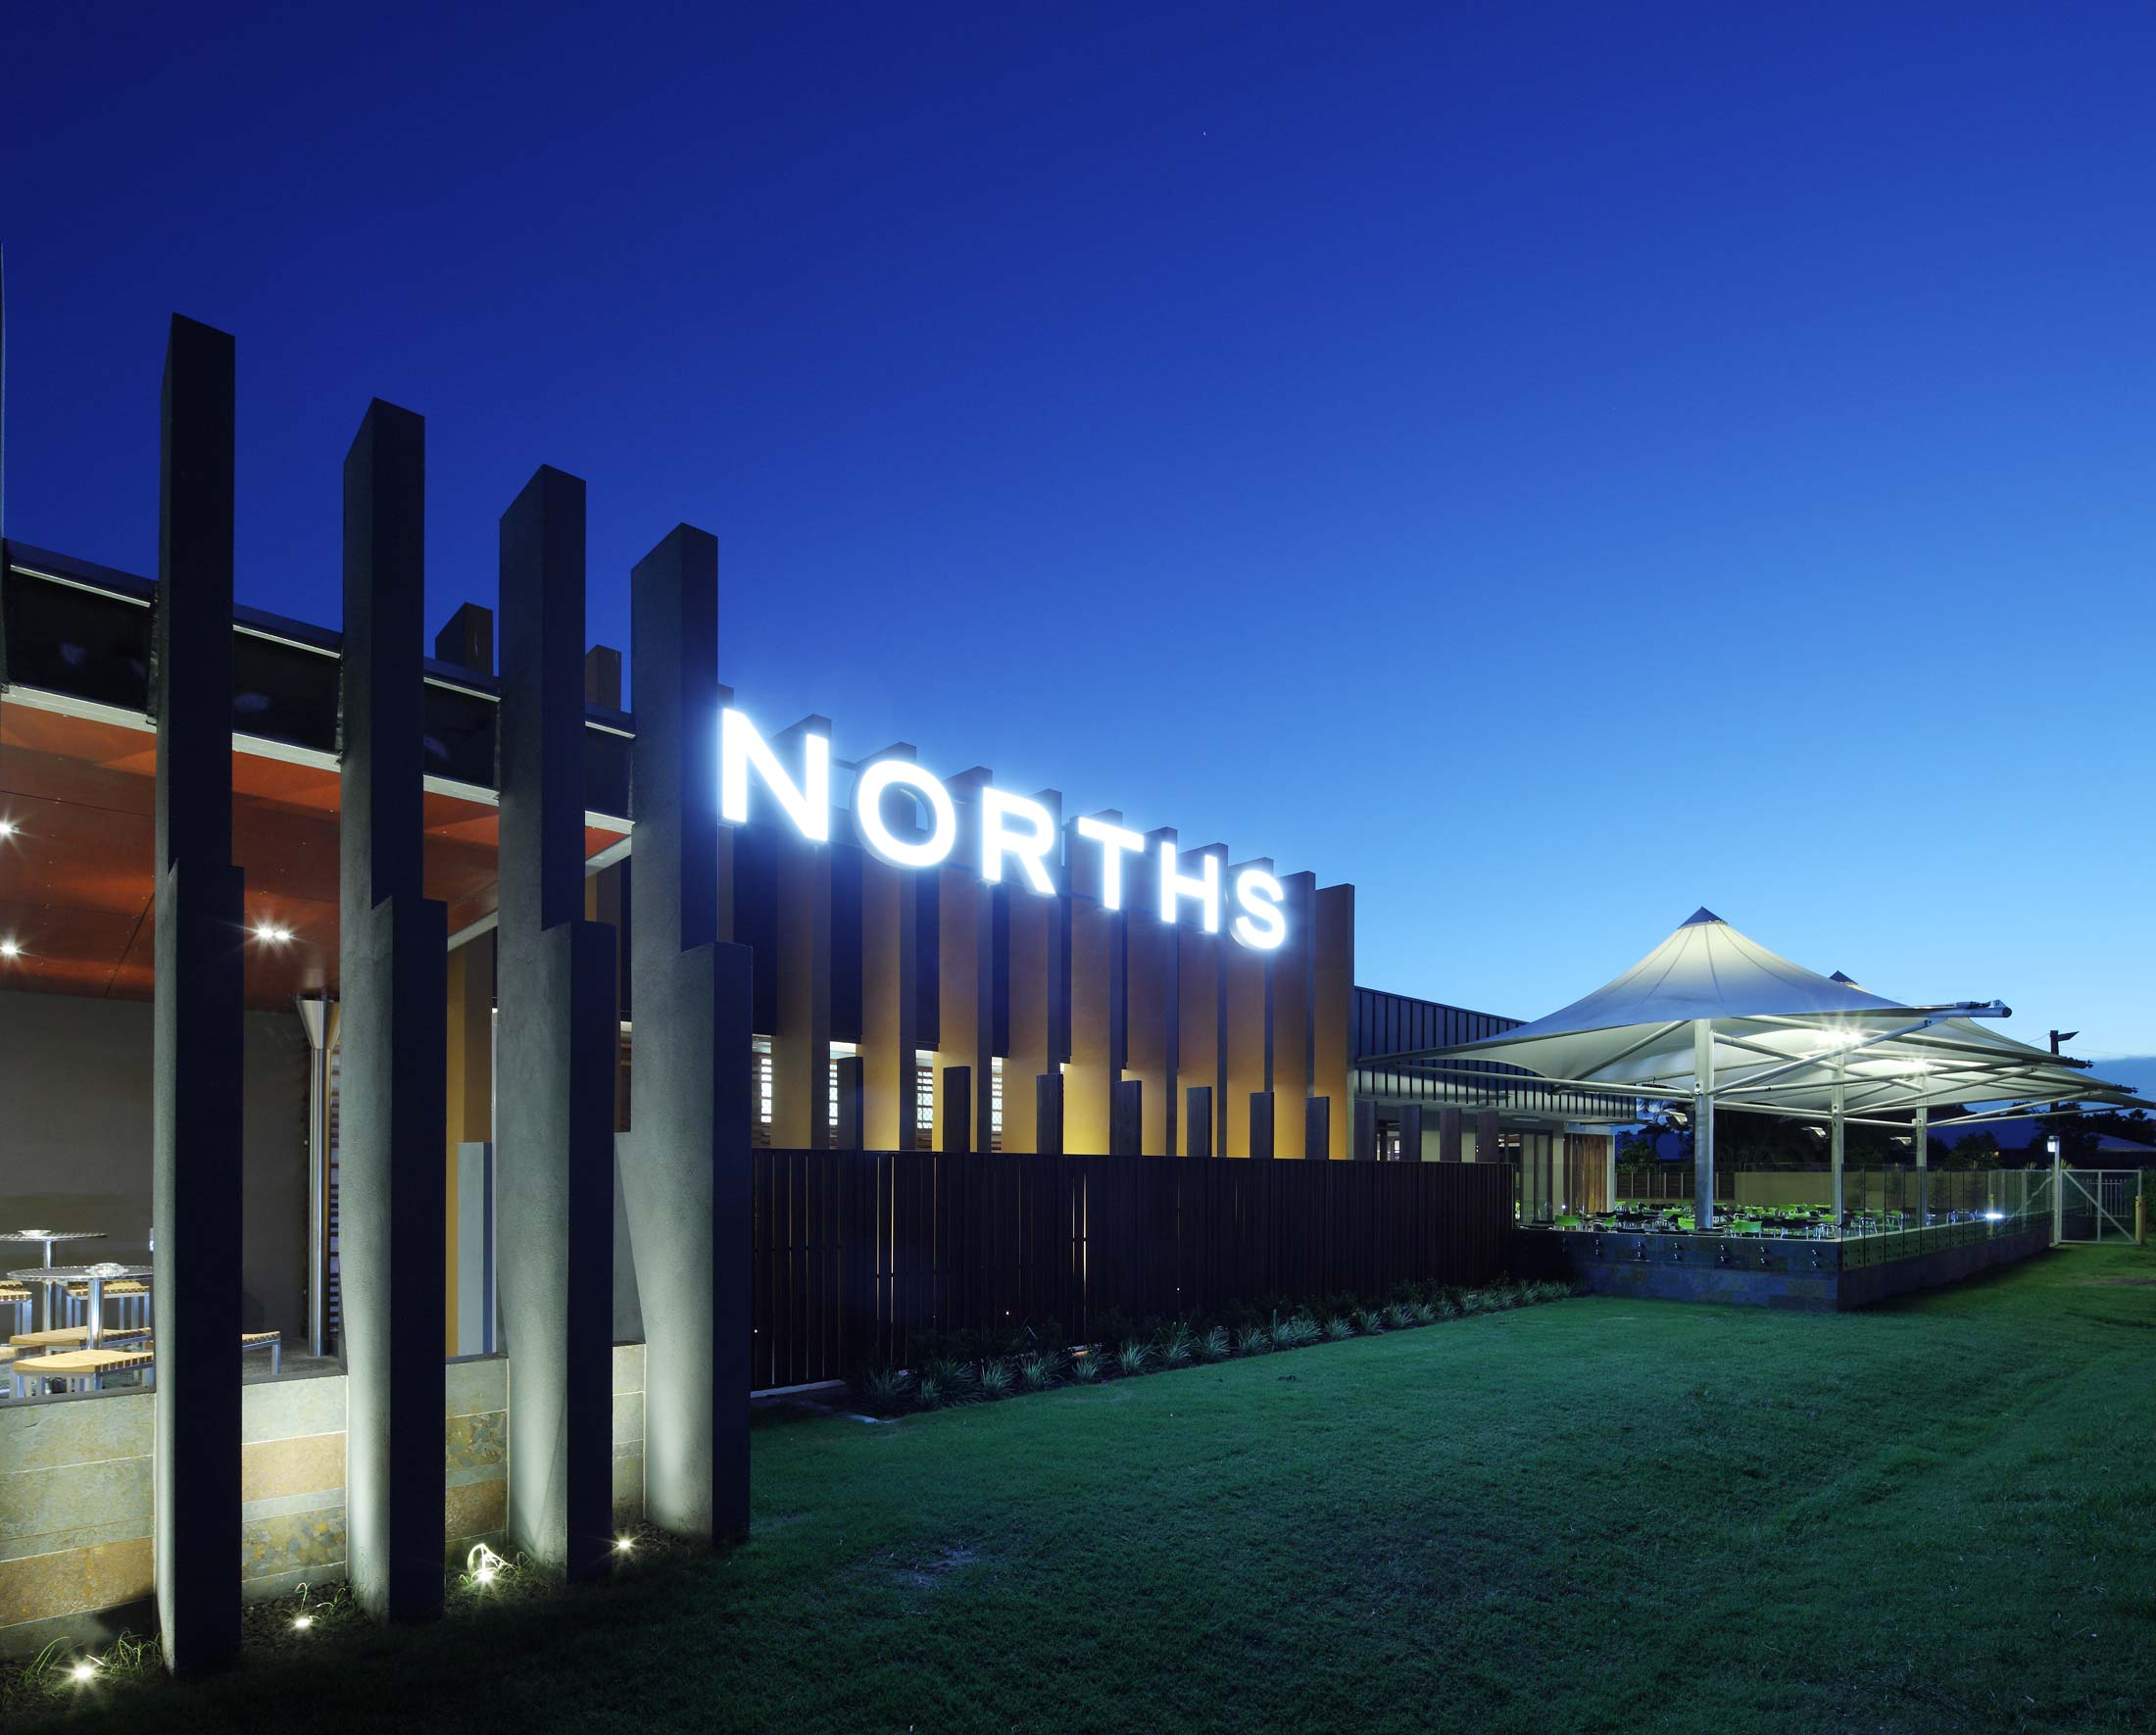 Norths-leagues-and-services-club-4.jpg